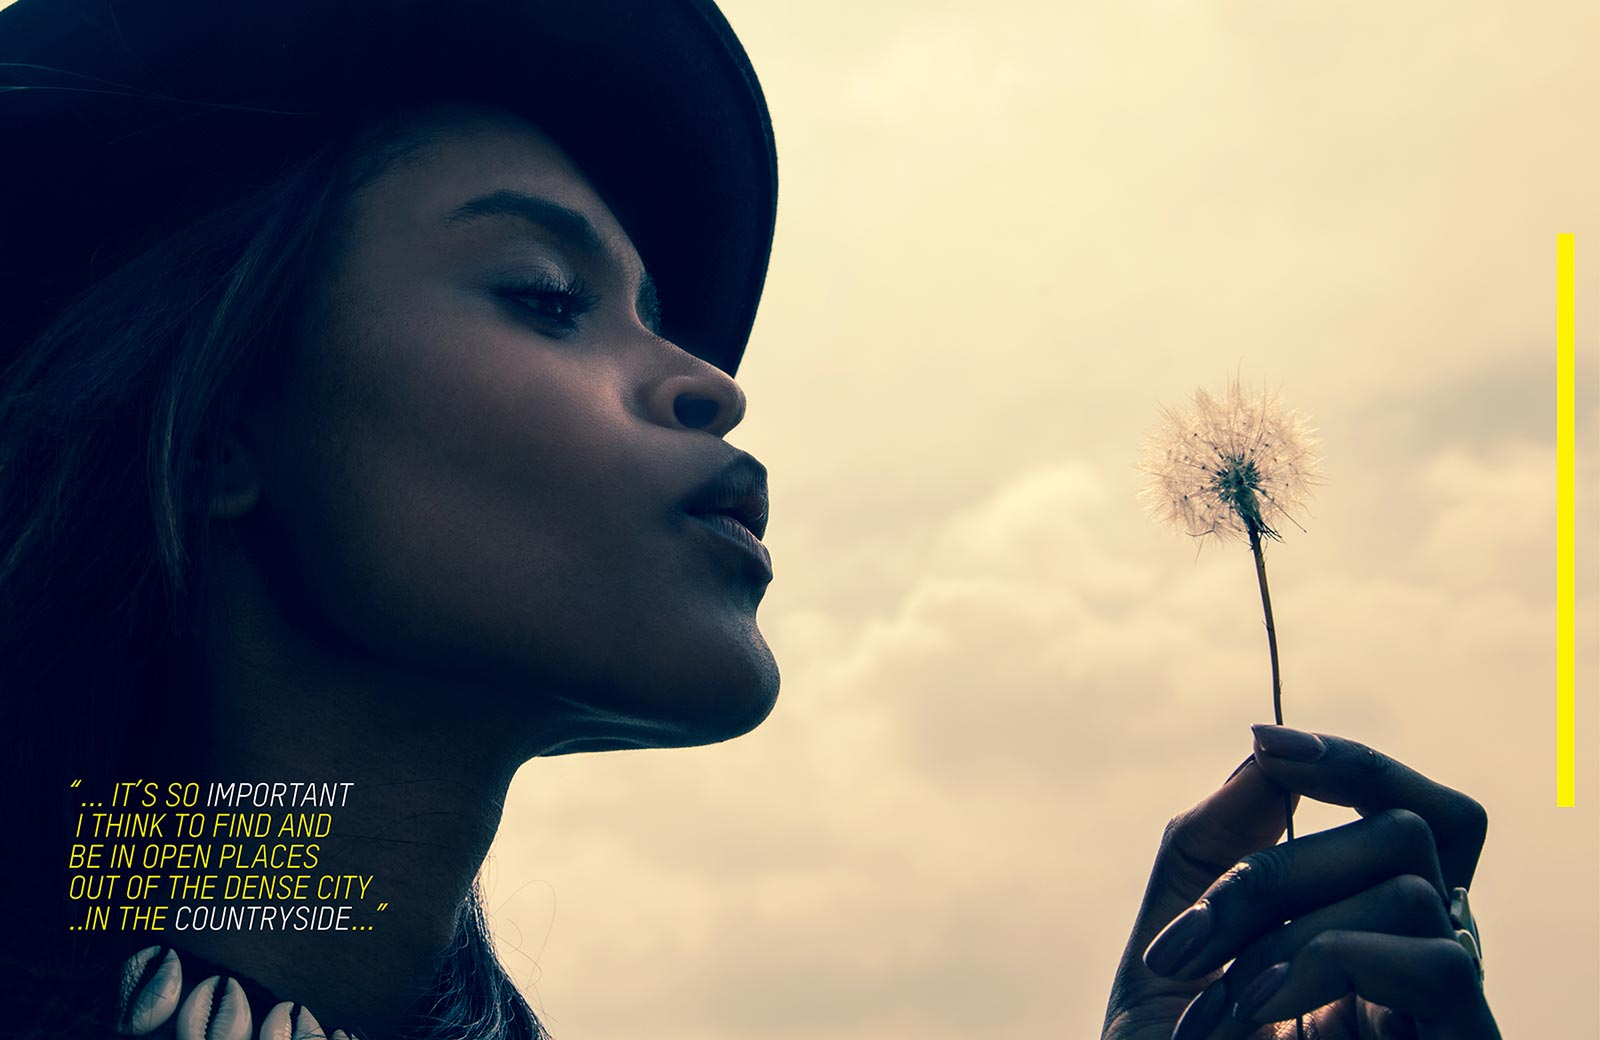 PORTIA OKOTCHA BLOWING DANDELION hey girl magazine